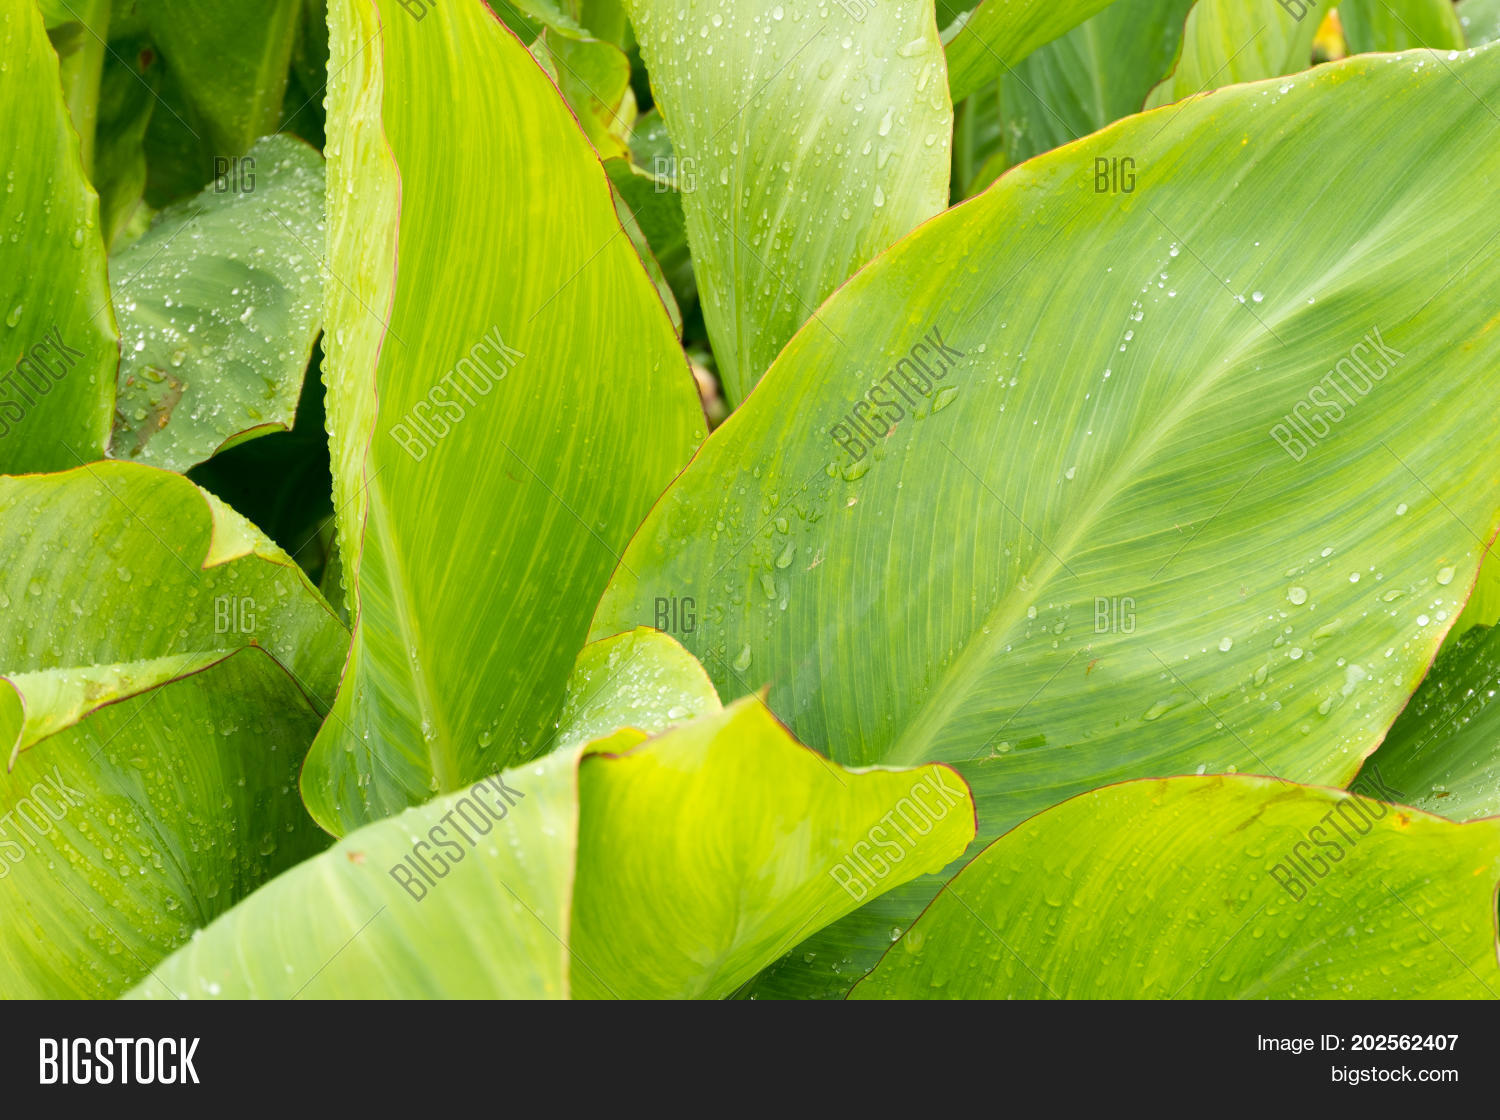 Large Green Leaves Of Plants In The Garden Closeup Background Tropics